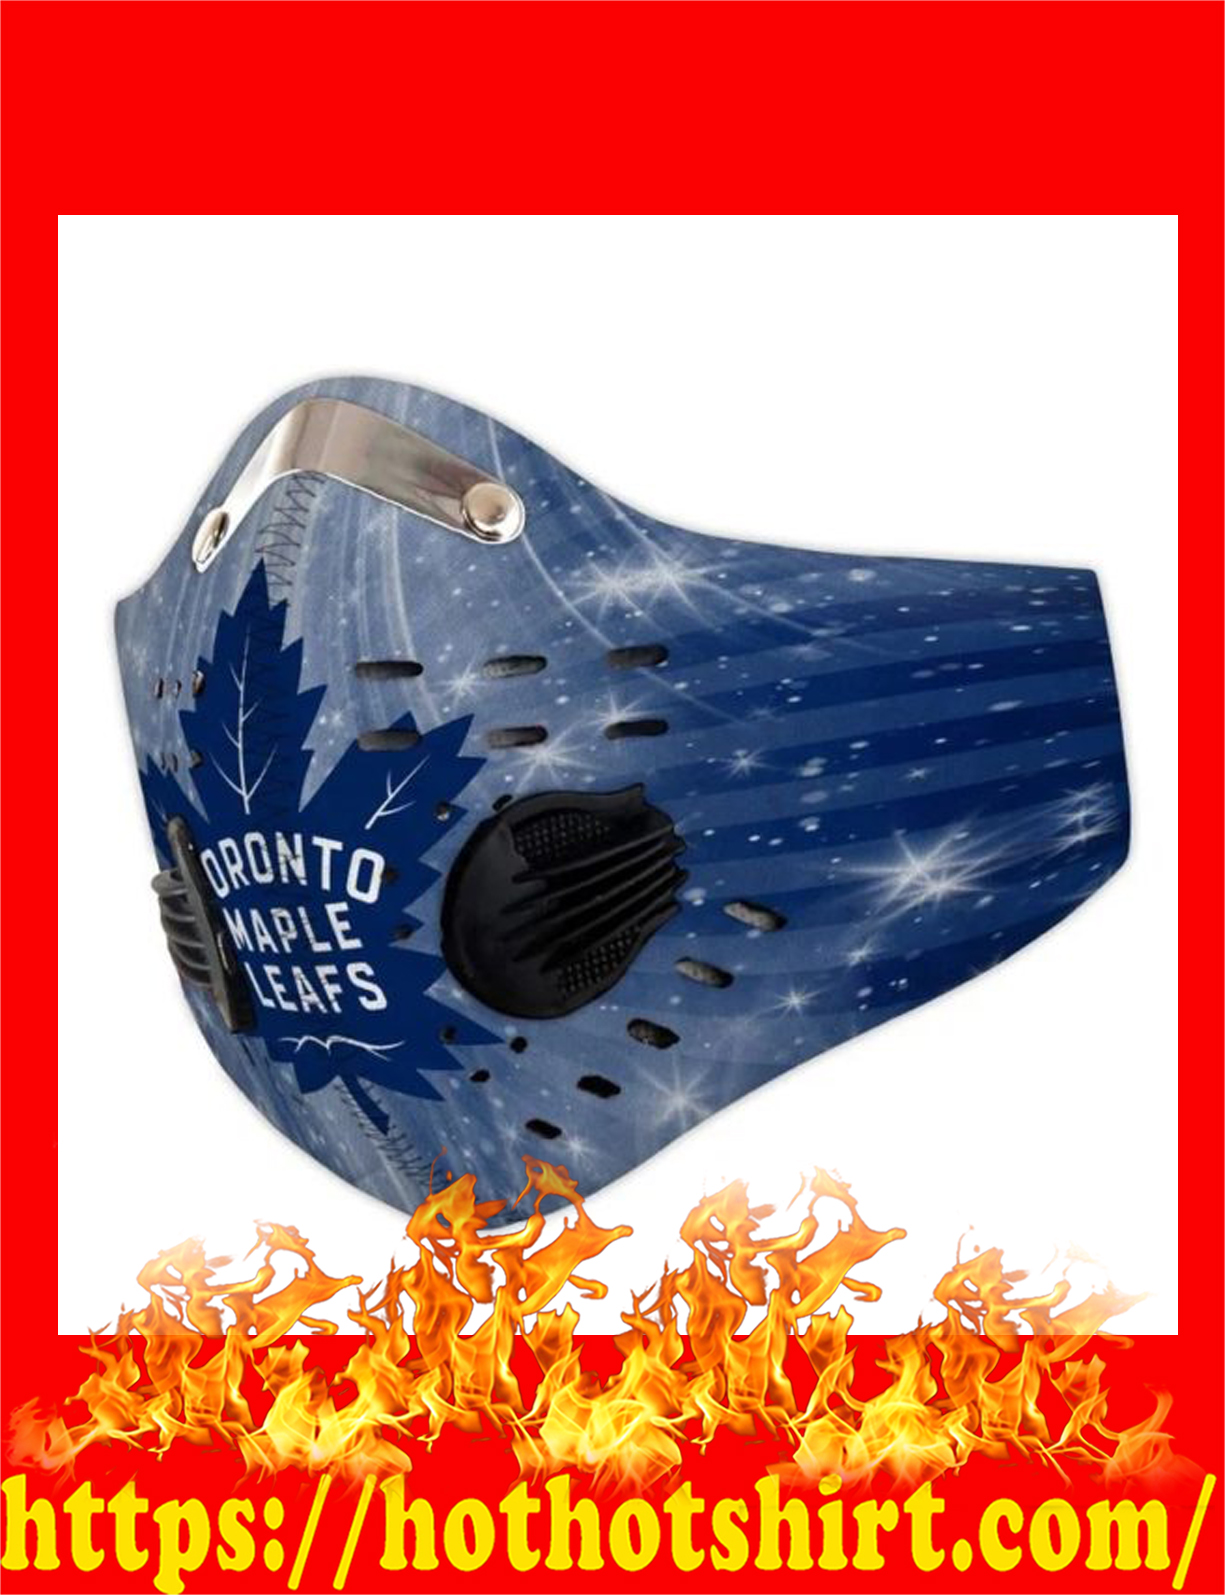 Toronto maple leafs filter face mask - detail